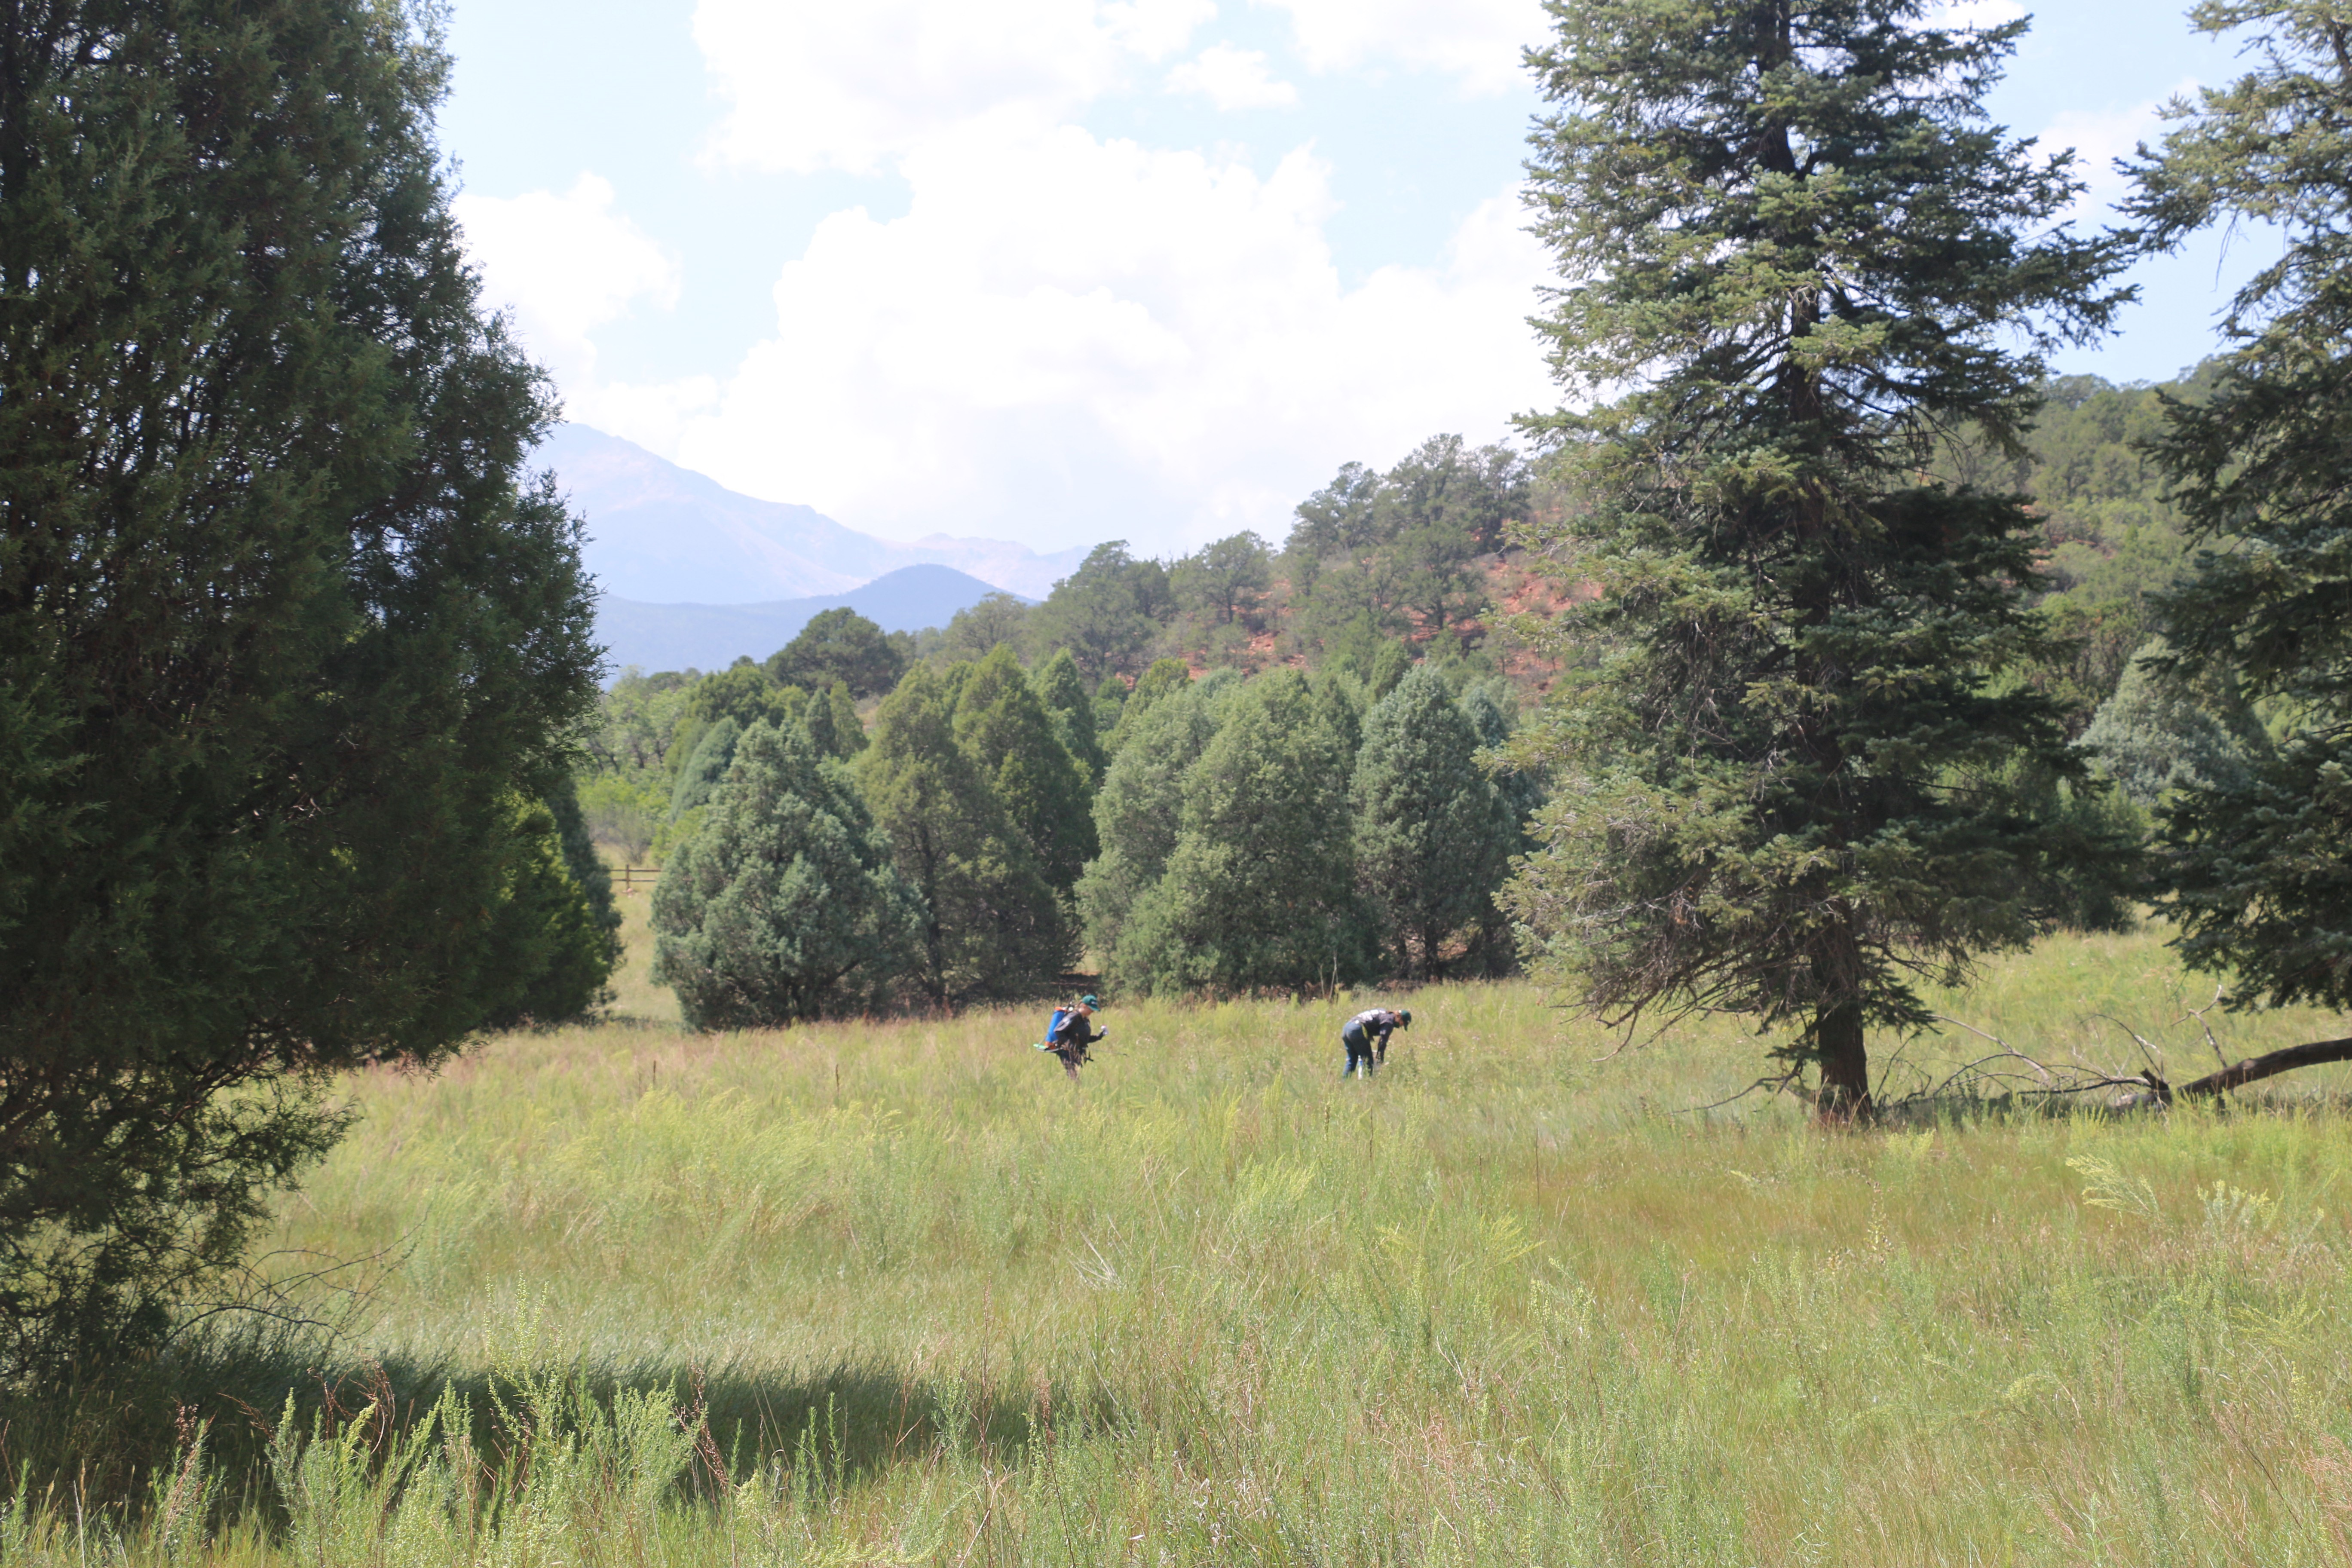 two people in the distance bending over to pull weeds in a large meadow.